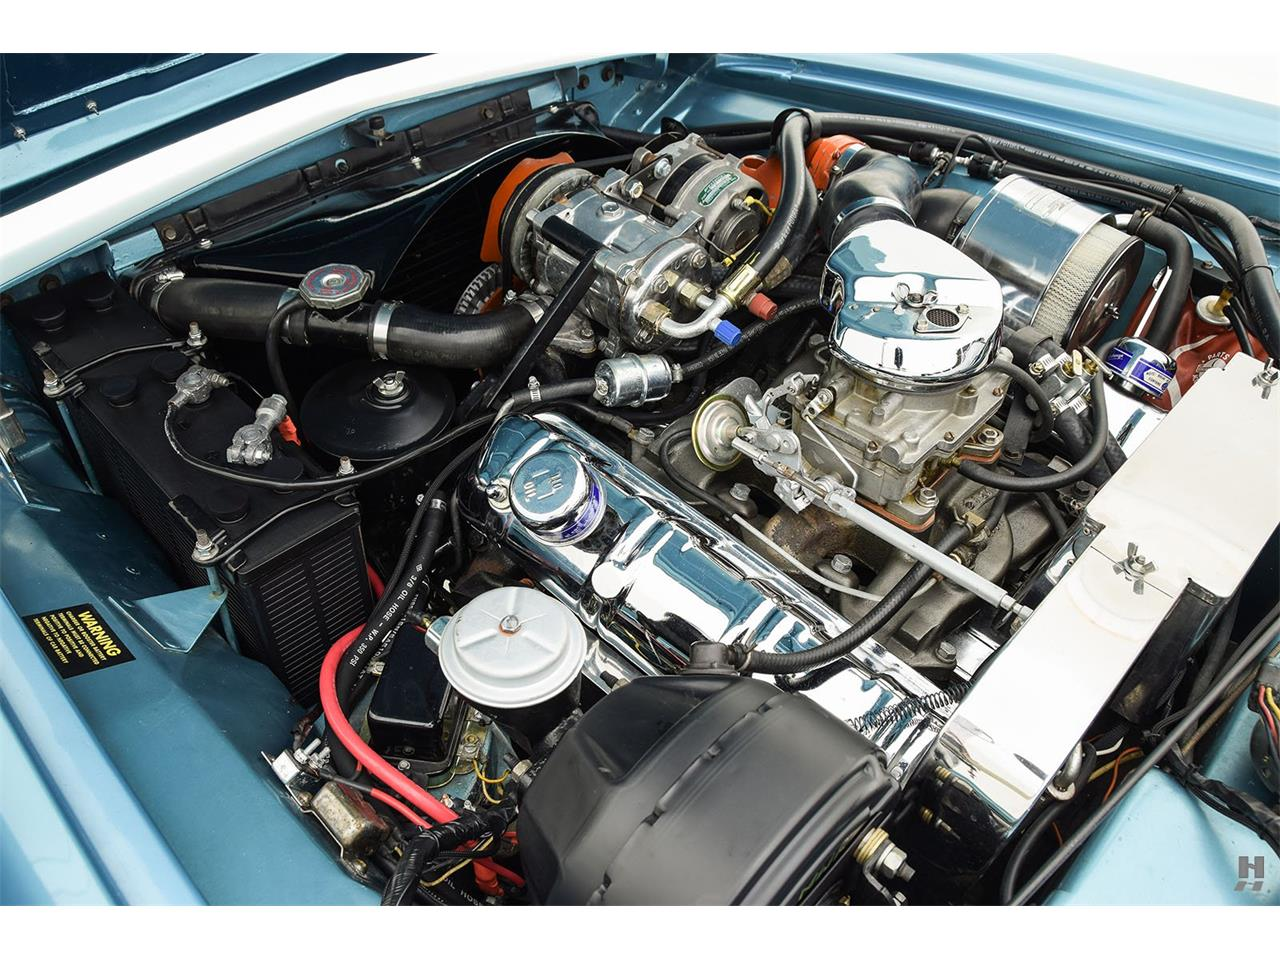 Large Picture of 1963 Studebaker Avanti - $77,500.00 Offered by Hyman Ltd. Classic Cars - MGHN